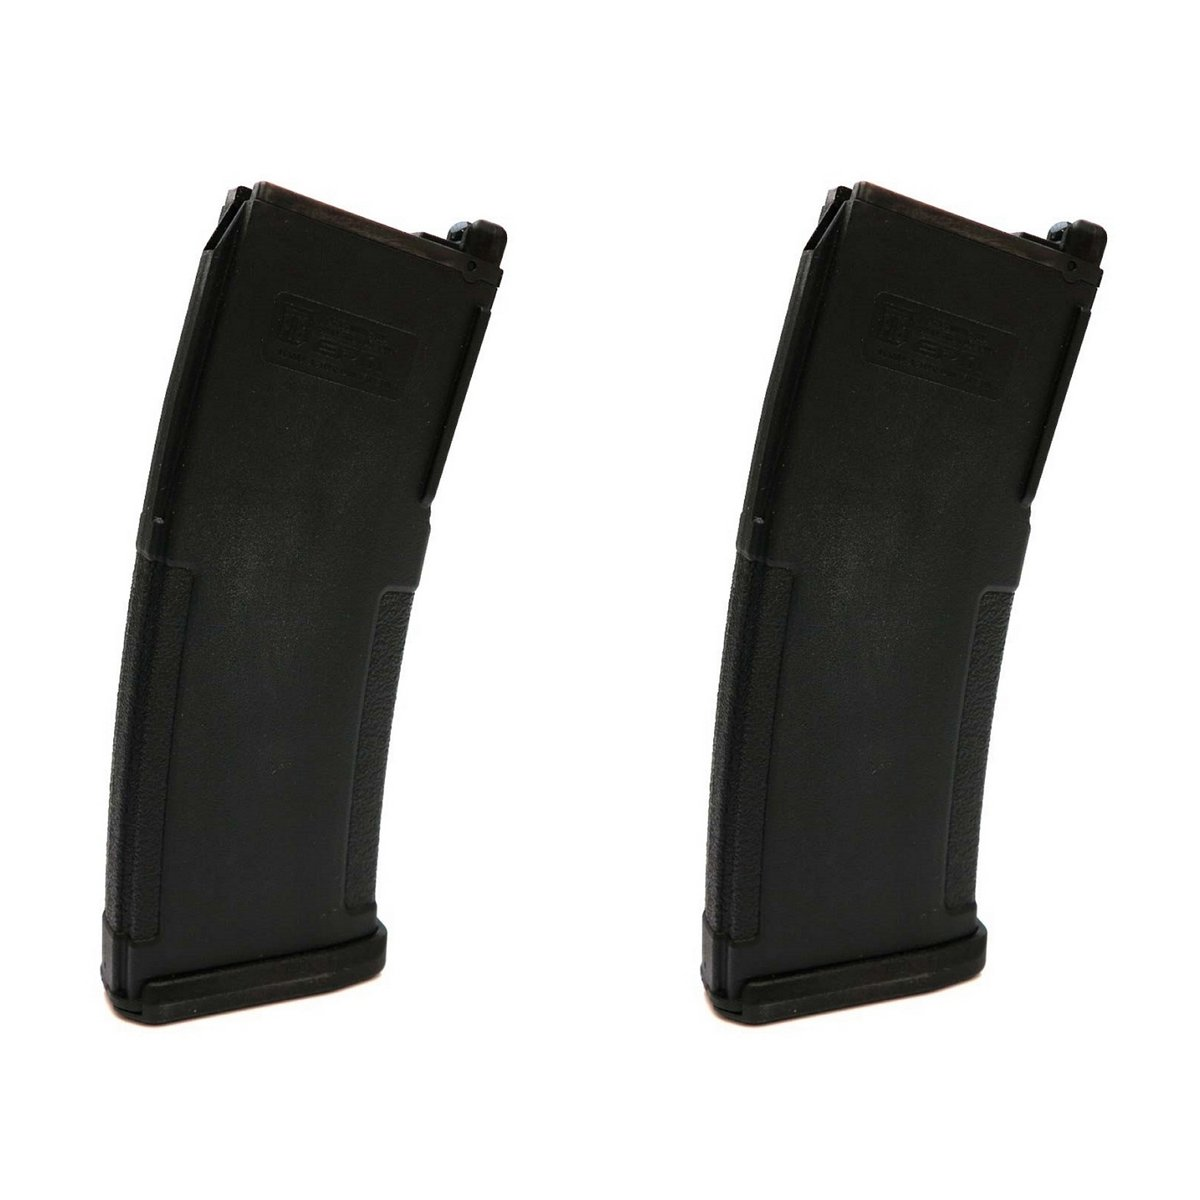 Airsoft Shooting Gear 2pcs PTS (KWA) EPM 40rd Enhanced Polymer GBBR Magazine Black